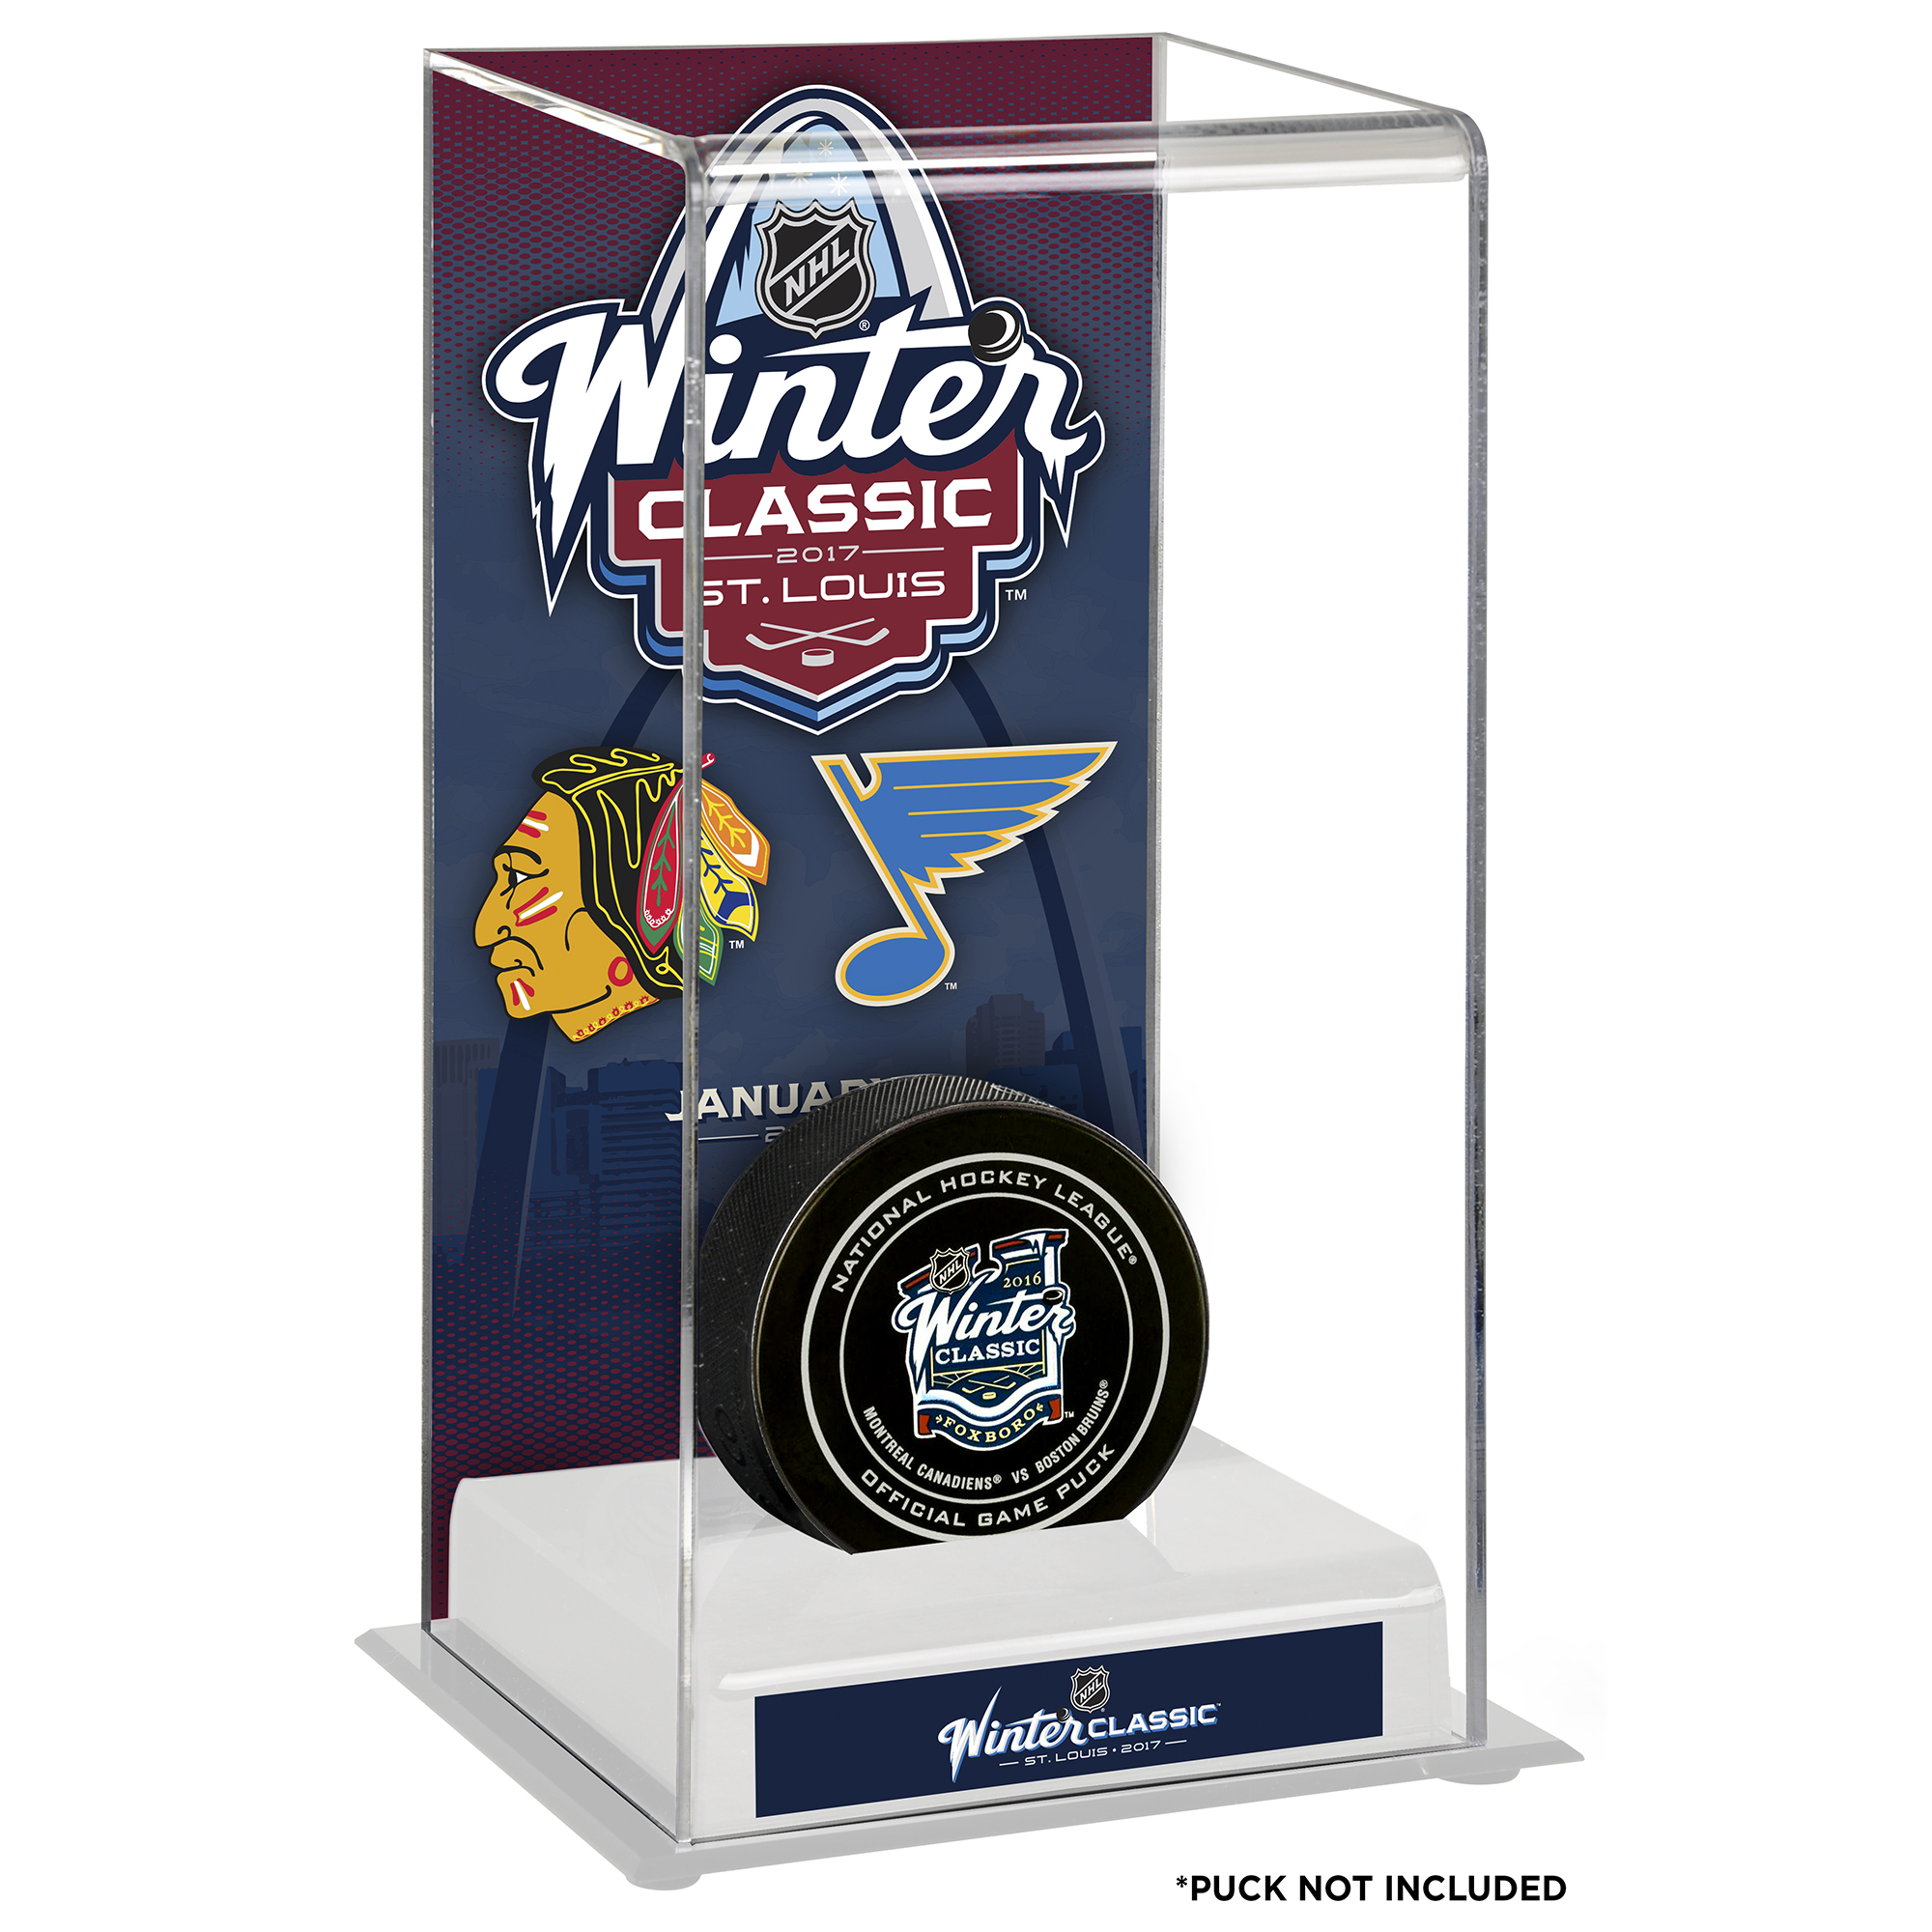 Fanatics Authentic 2017 NHL Winter Classic Chicago Blackhawks vs. St. Louis Blues Deluxe Tall Hockey Puck Display Case... by Fanatics Authentic